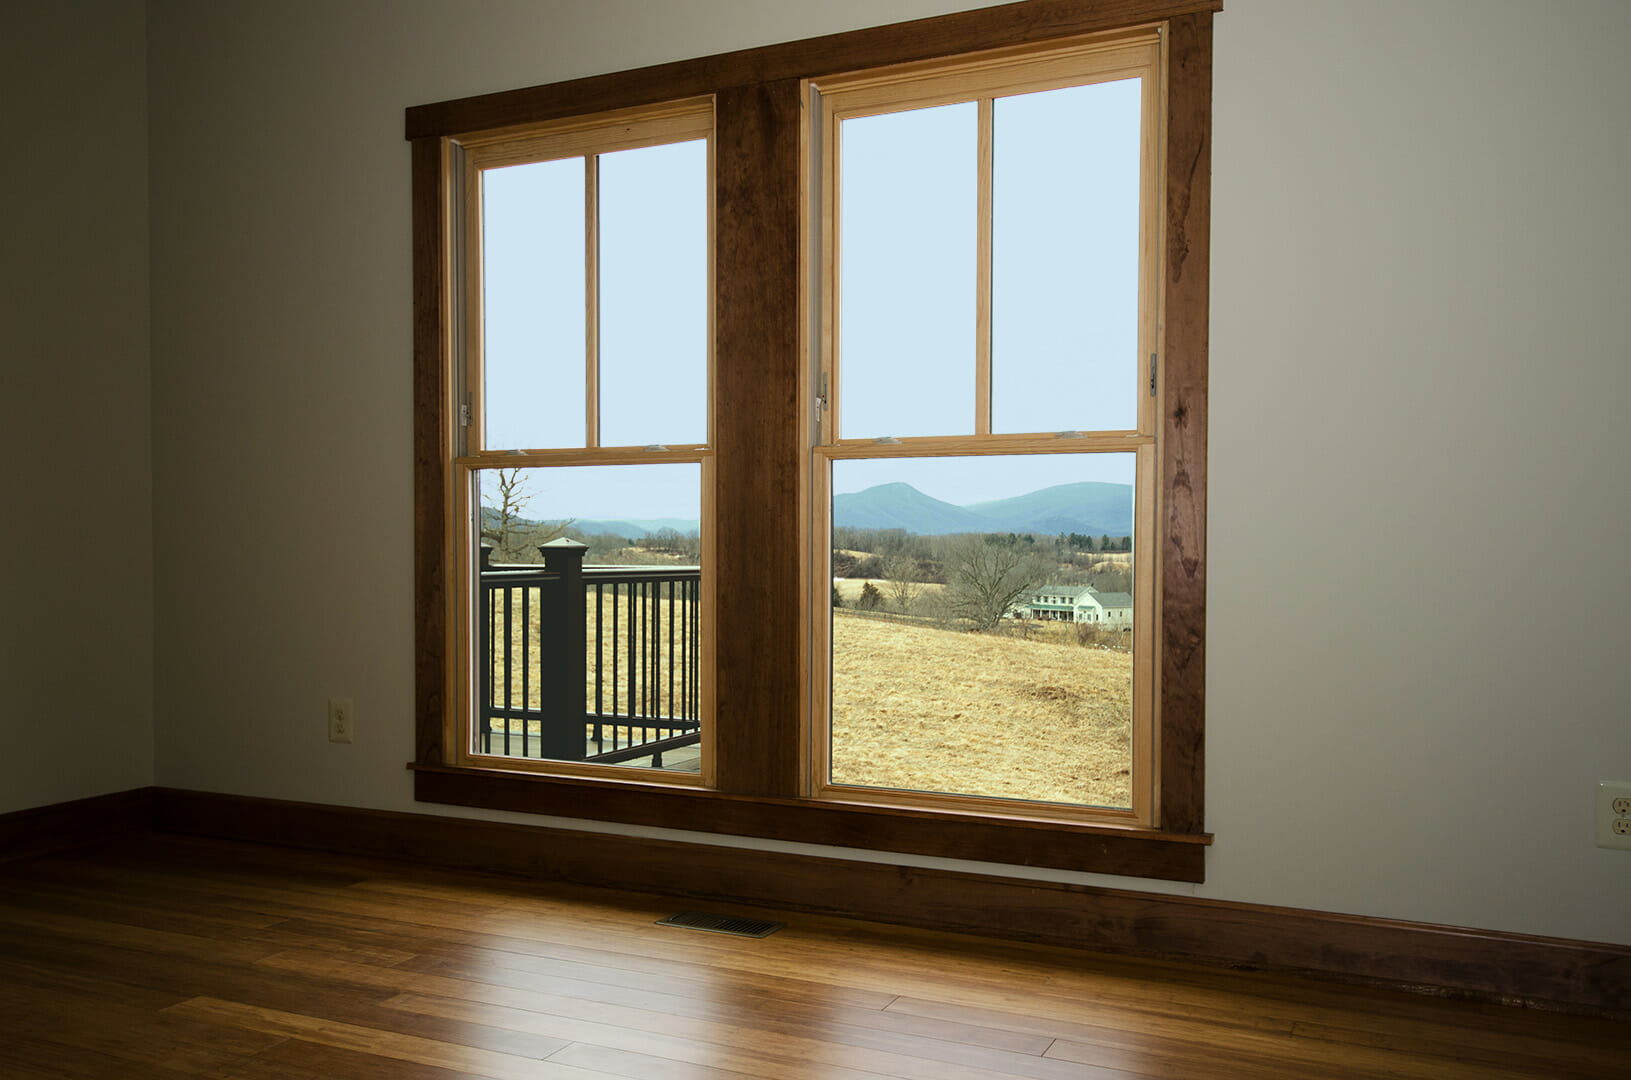 Rustic_Home_-_Int_Window_View